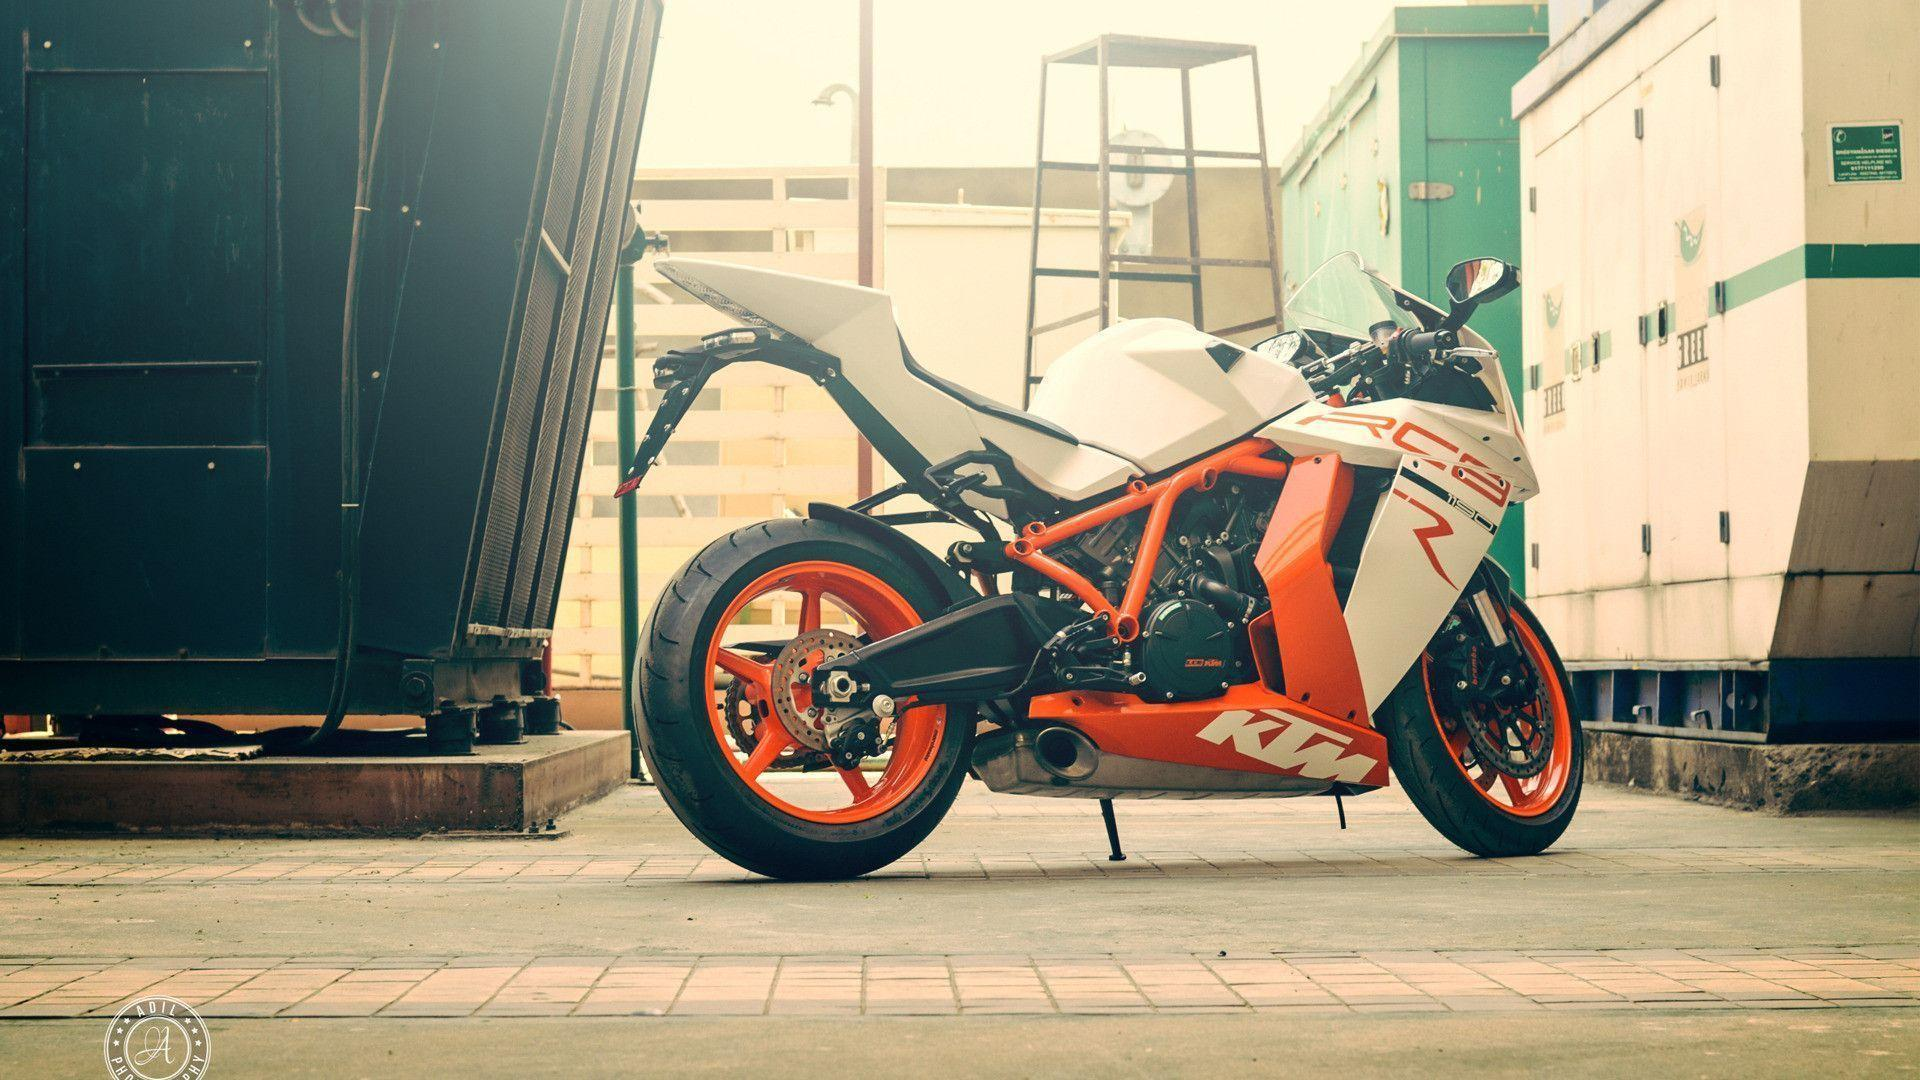 Background Images For Editing Hd Bike: Ktm Rc8 2017 Wallpapers HD